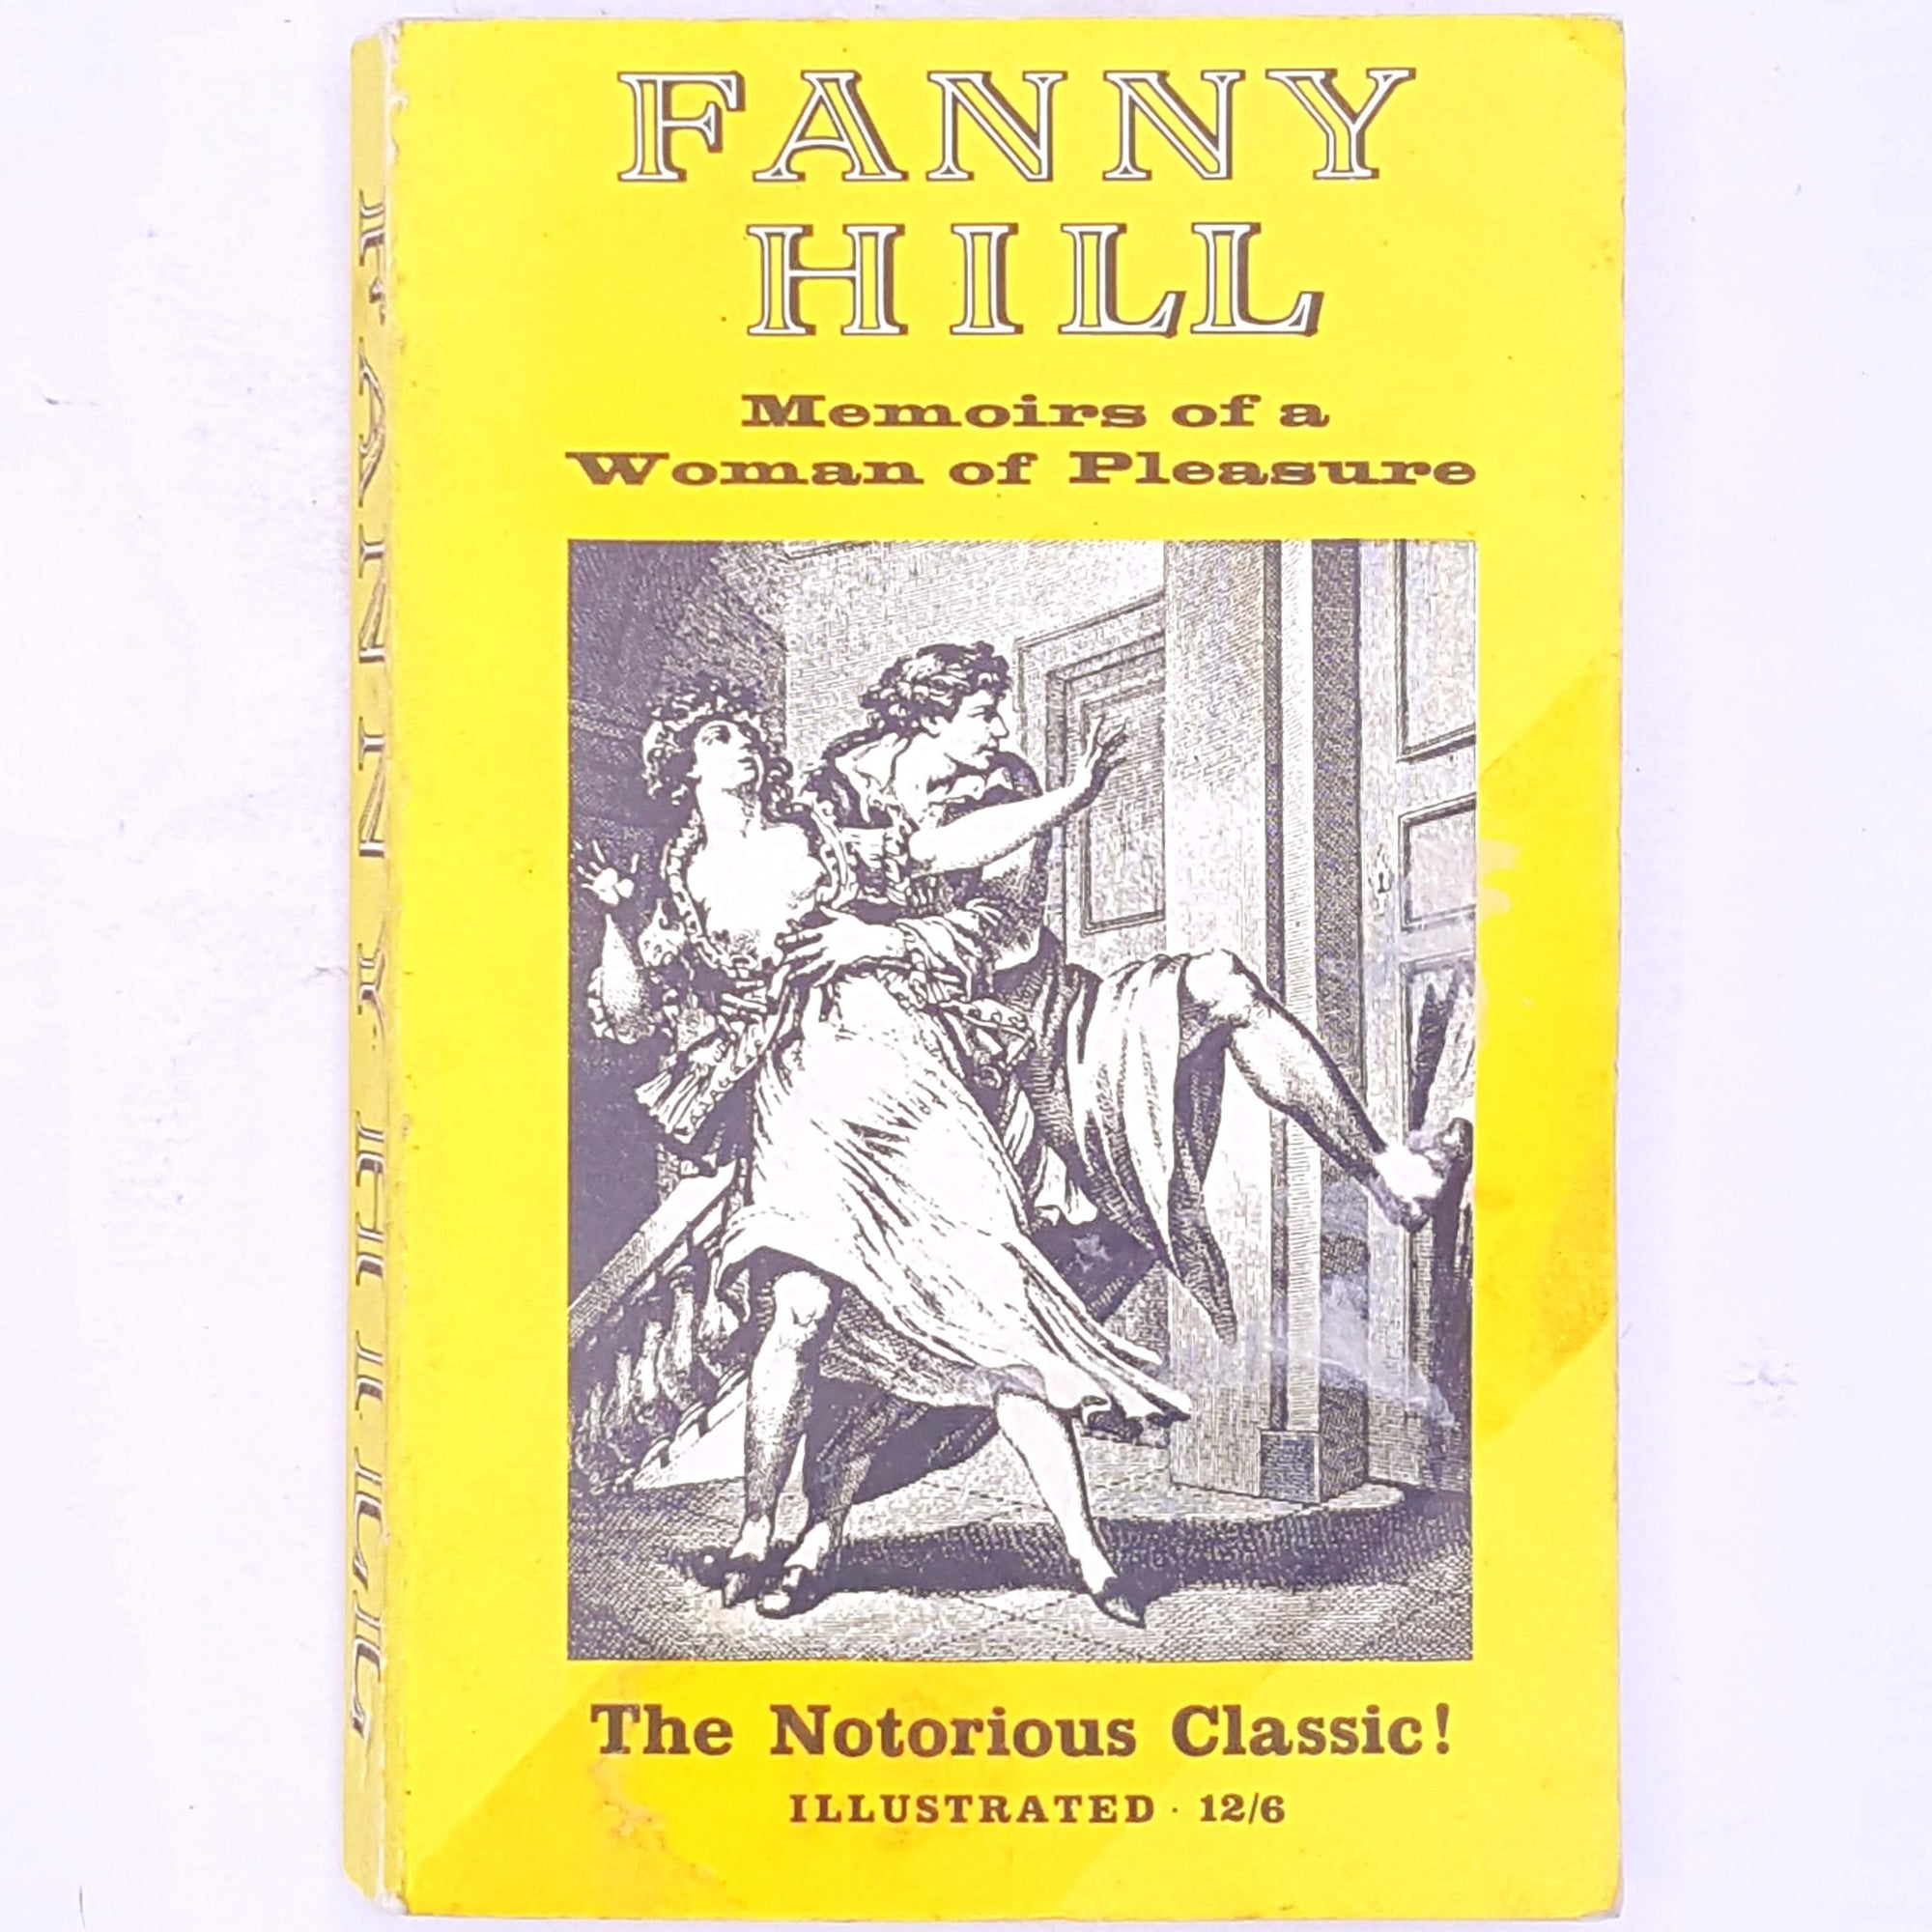 John Cleland - Fanny Hill Memoirs of a Woman of Pleasure